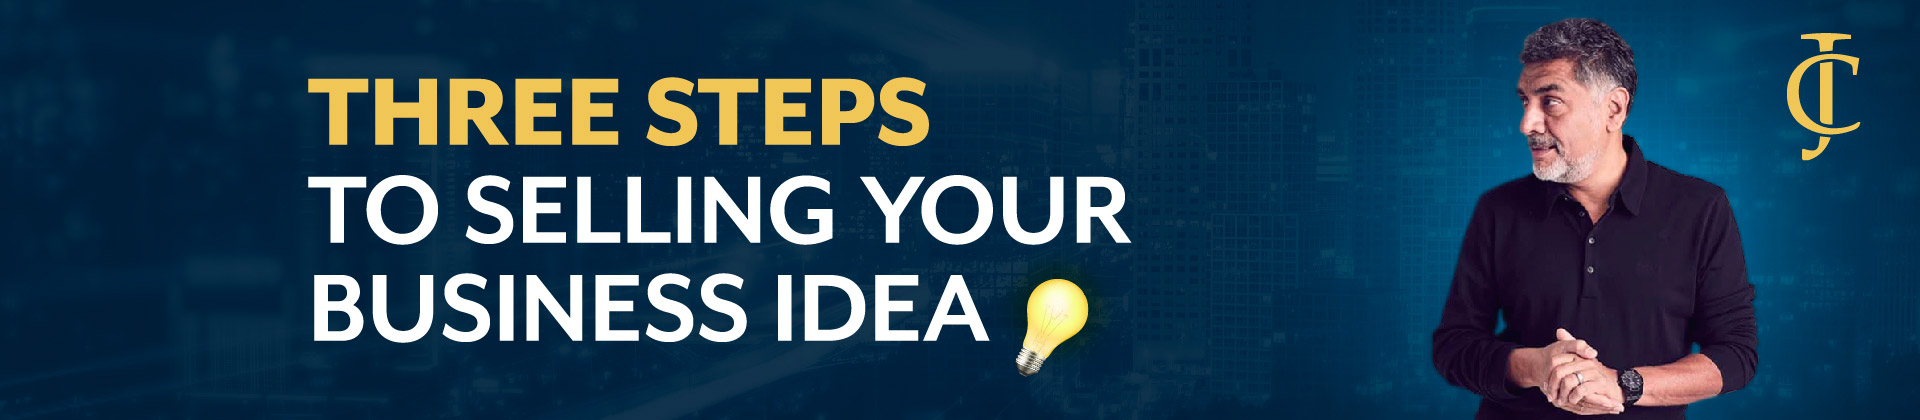 Three steps to selling your business idea